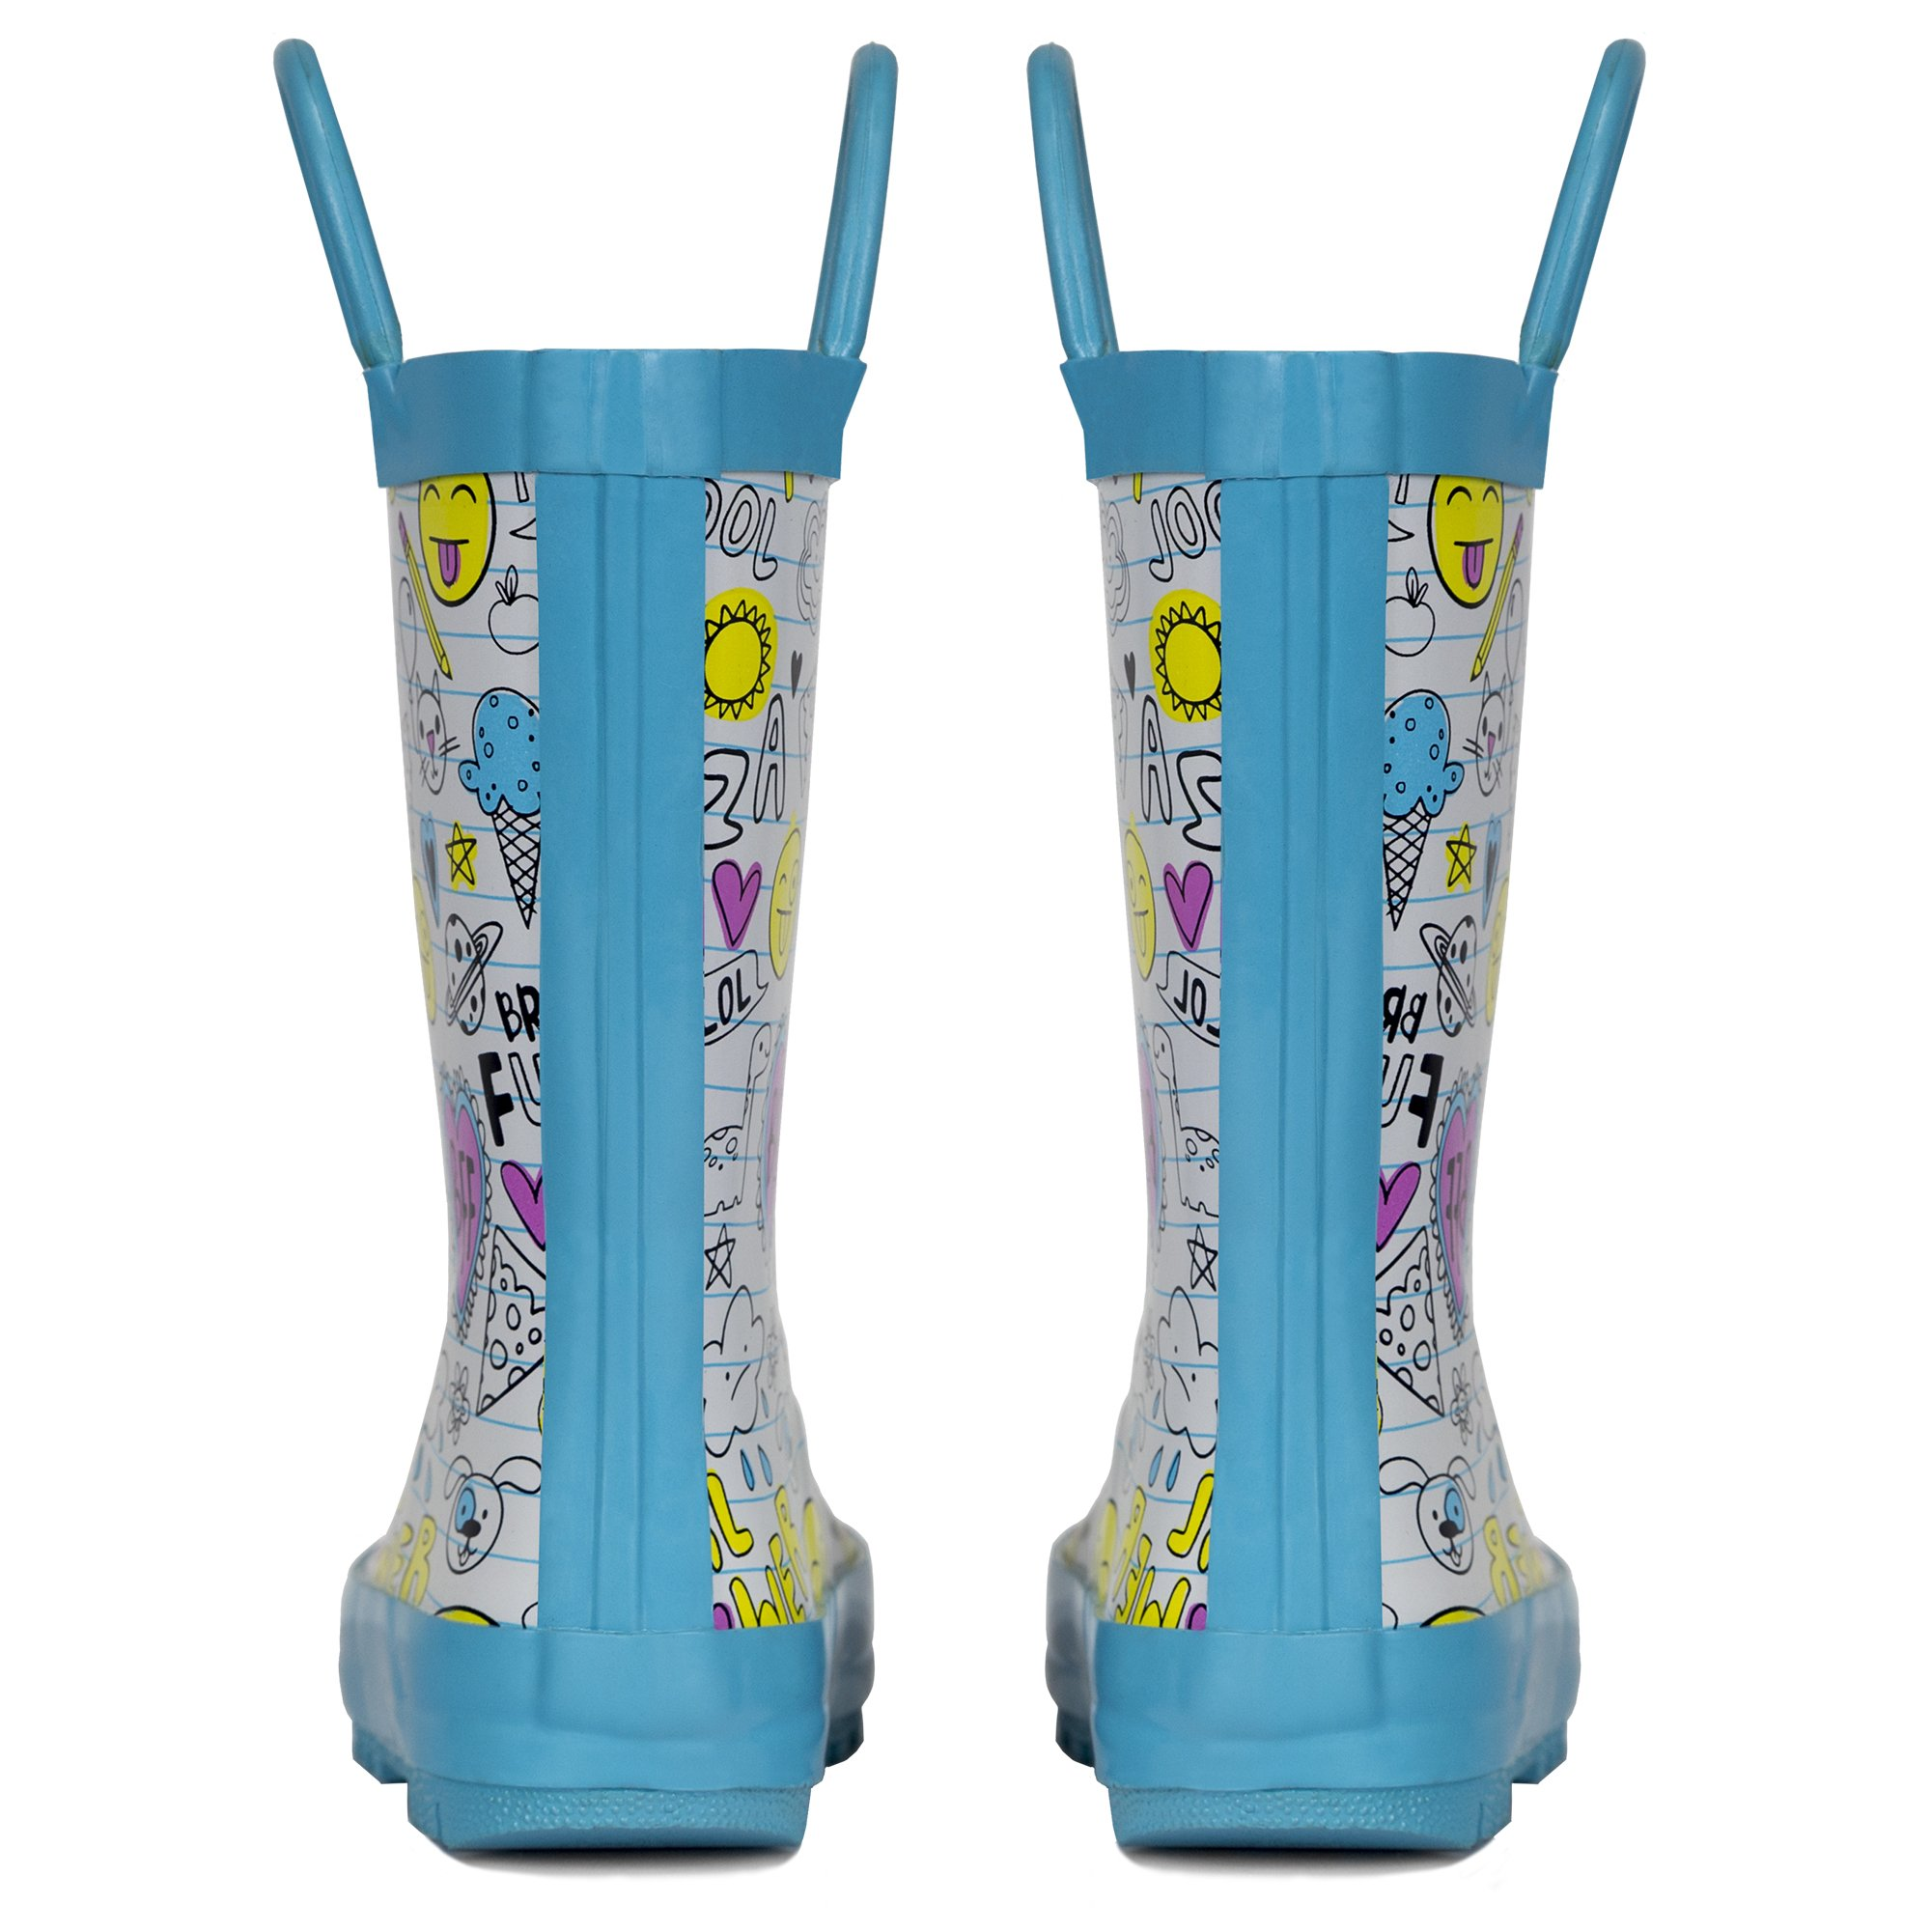 LONECONE Children's Waterproof Rubber Rain Boots in Fun Patterns with Easy-On Handles Simple for Kids, Oodles of Doodles, Toddler 8 by LONECONE (Image #5)